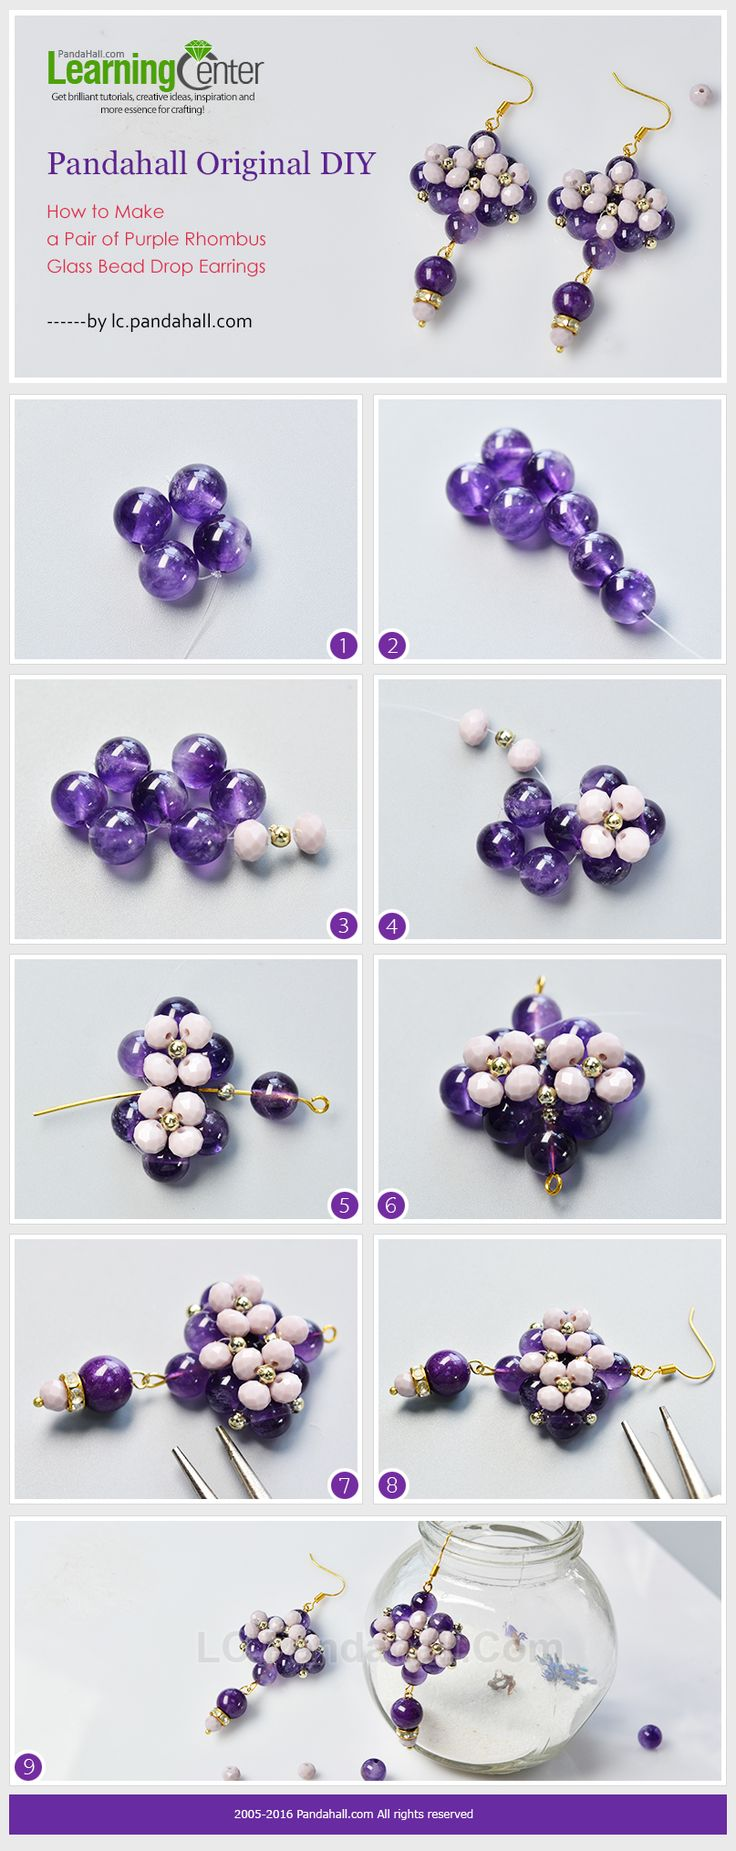 Pandahall Original DIY - How to Make a Pair of Purple Rhombus Glass Bead Drop Earrings